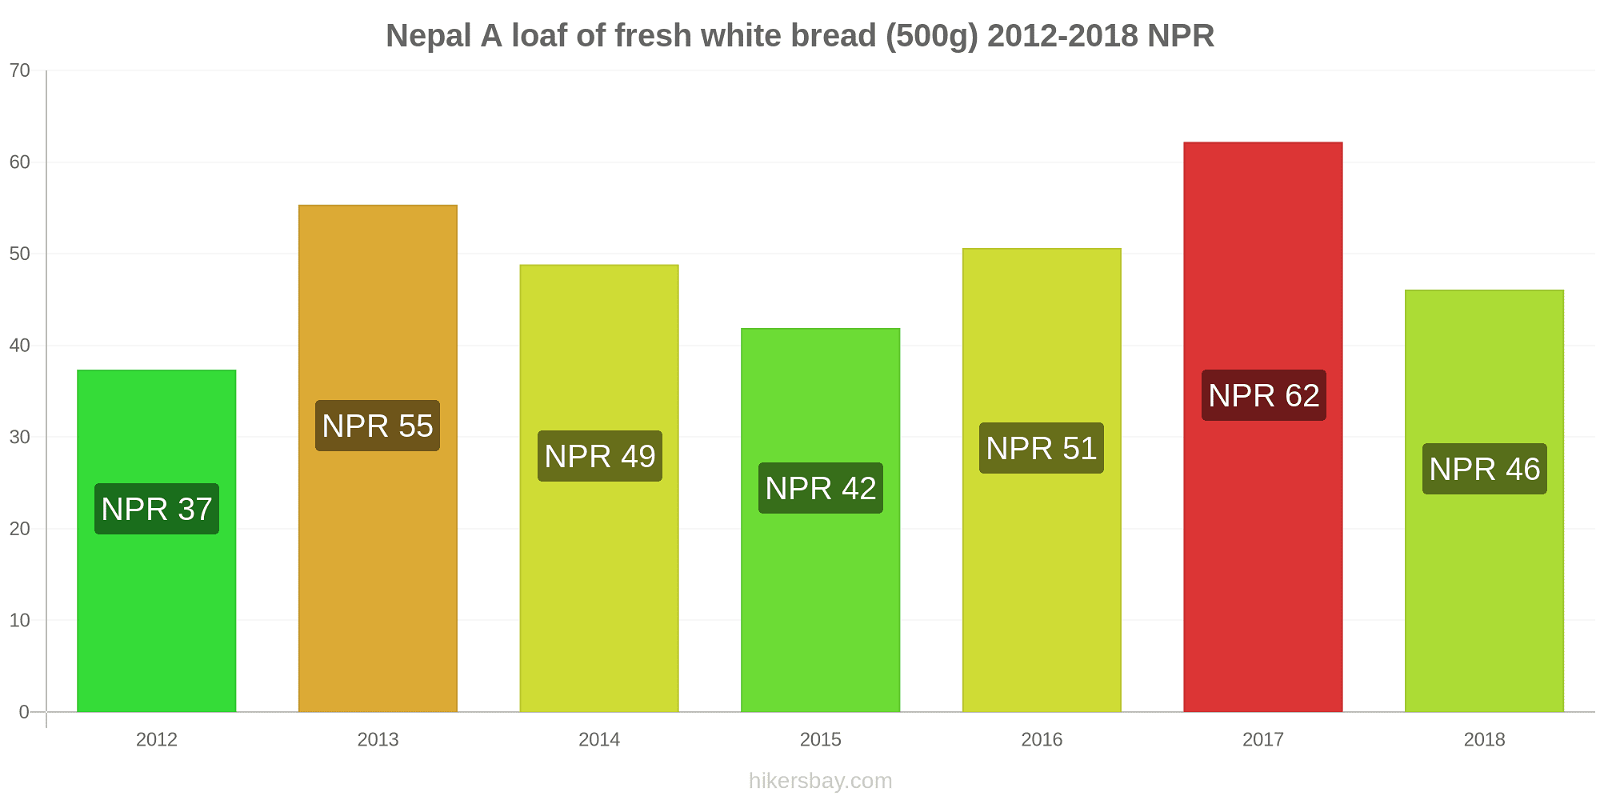 Nepal price changes A loaf of fresh white bread (500g) hikersbay.com